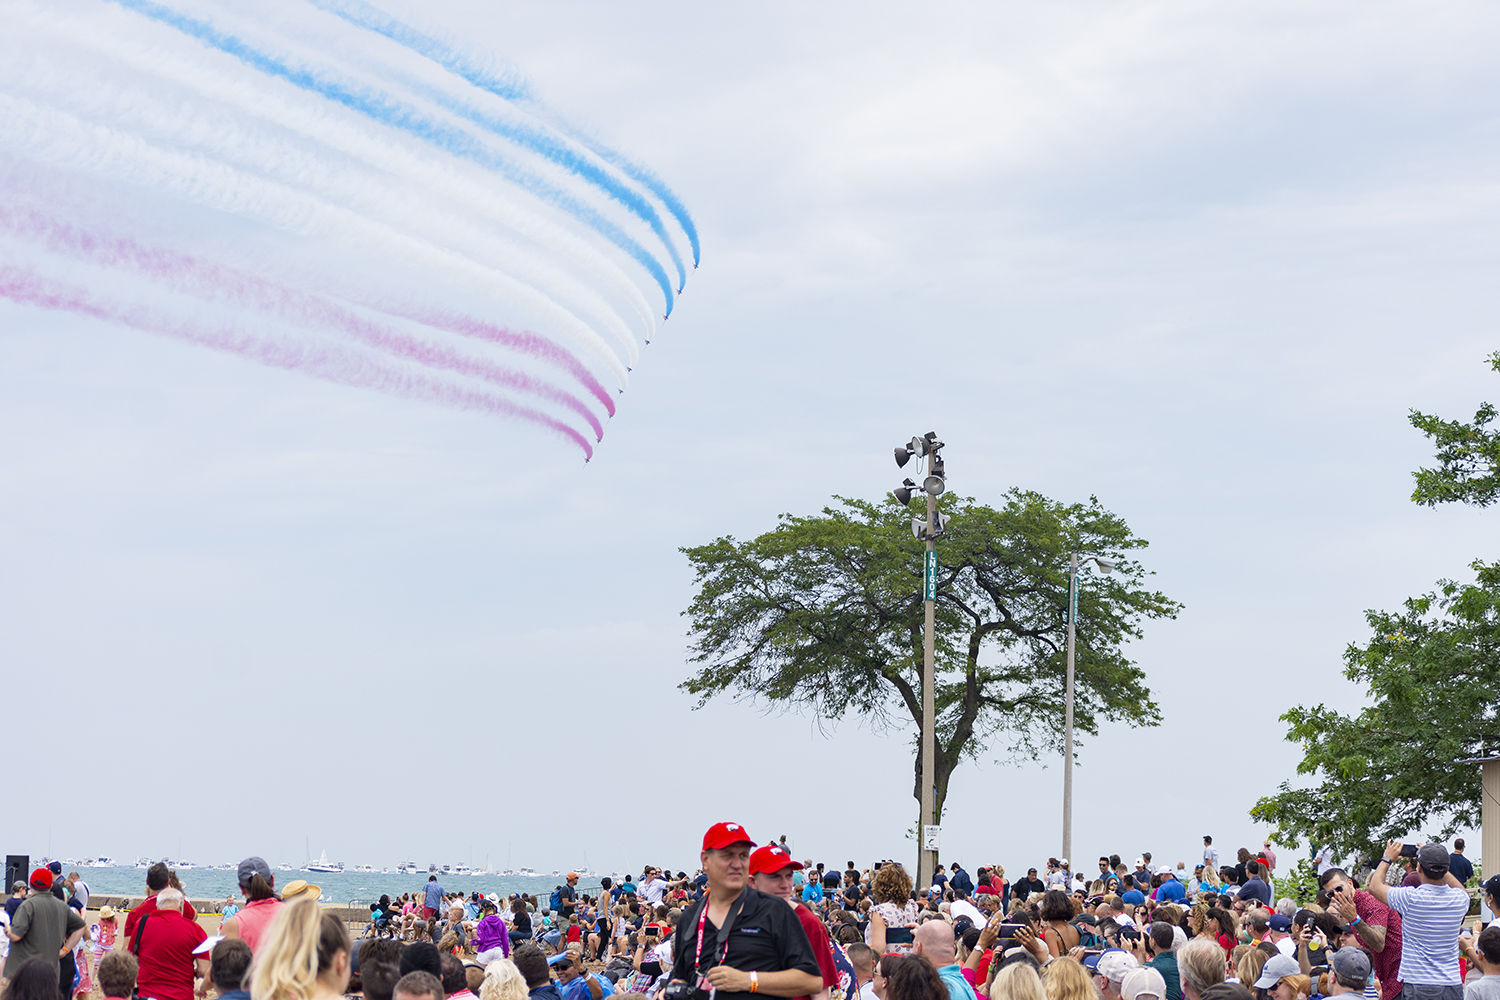 The+Royal+Air+Force+Aerobatic+Team%2C+known+as+the+Red+Arrows%2C+performed+their+first+demonstation+in+North+America+Aug.+17+at+the+61st+annual+Chicago+Air+and+Water+Show.